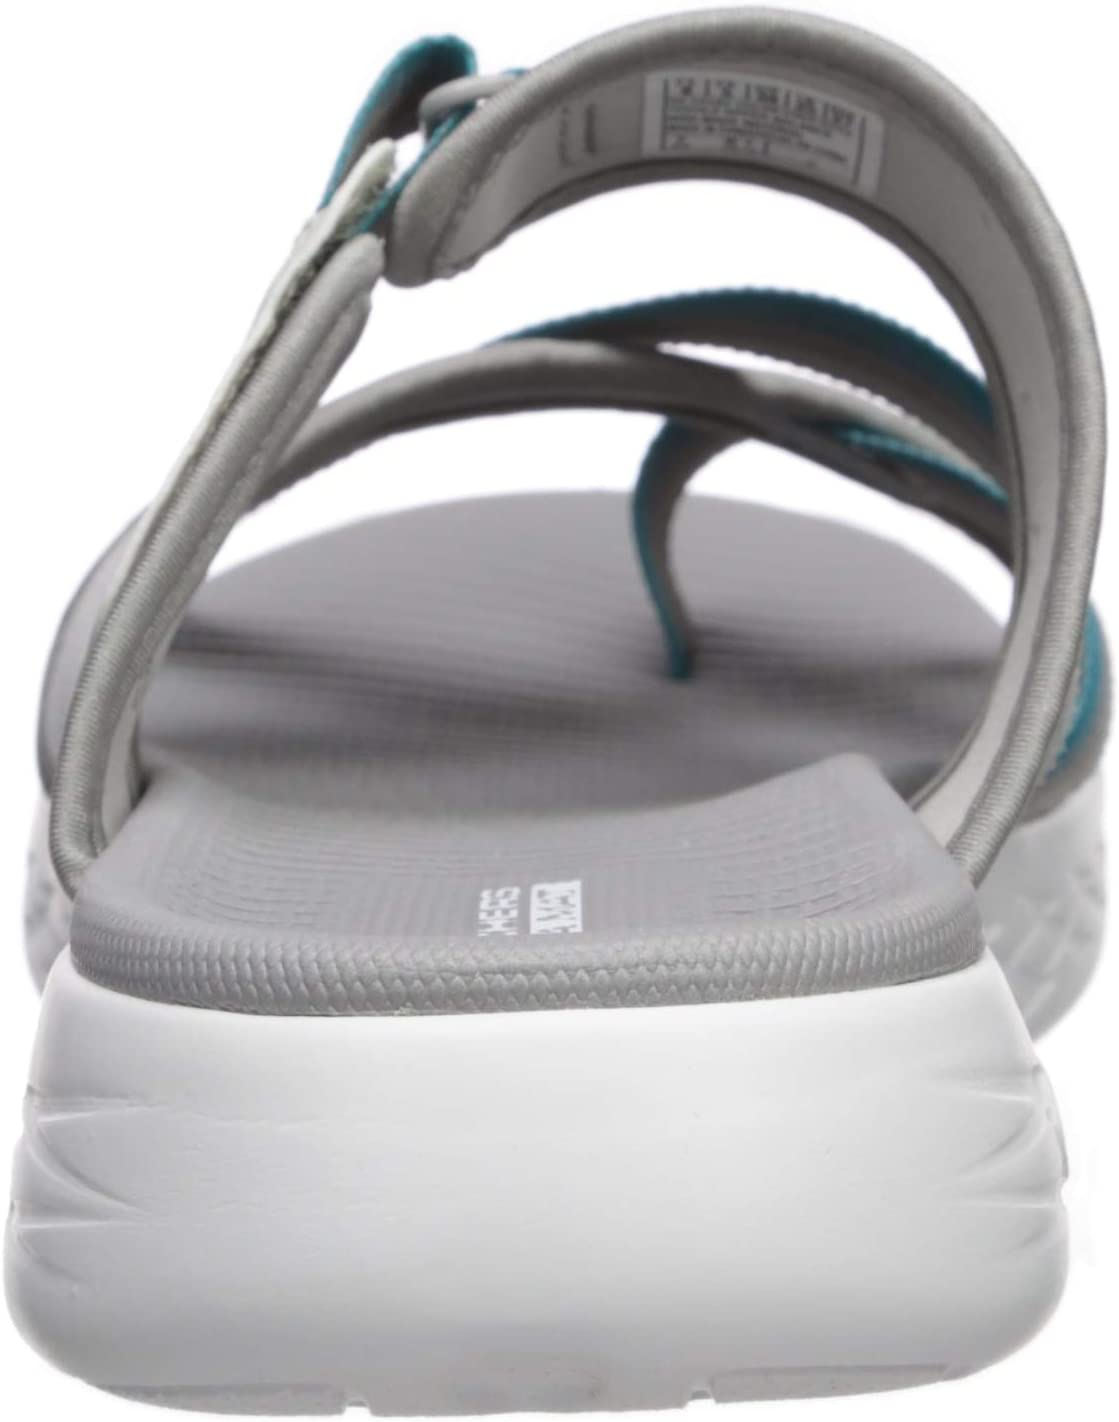 Skechers Womens 16161 On-The-go 600 - Summit Gray/Turquoise